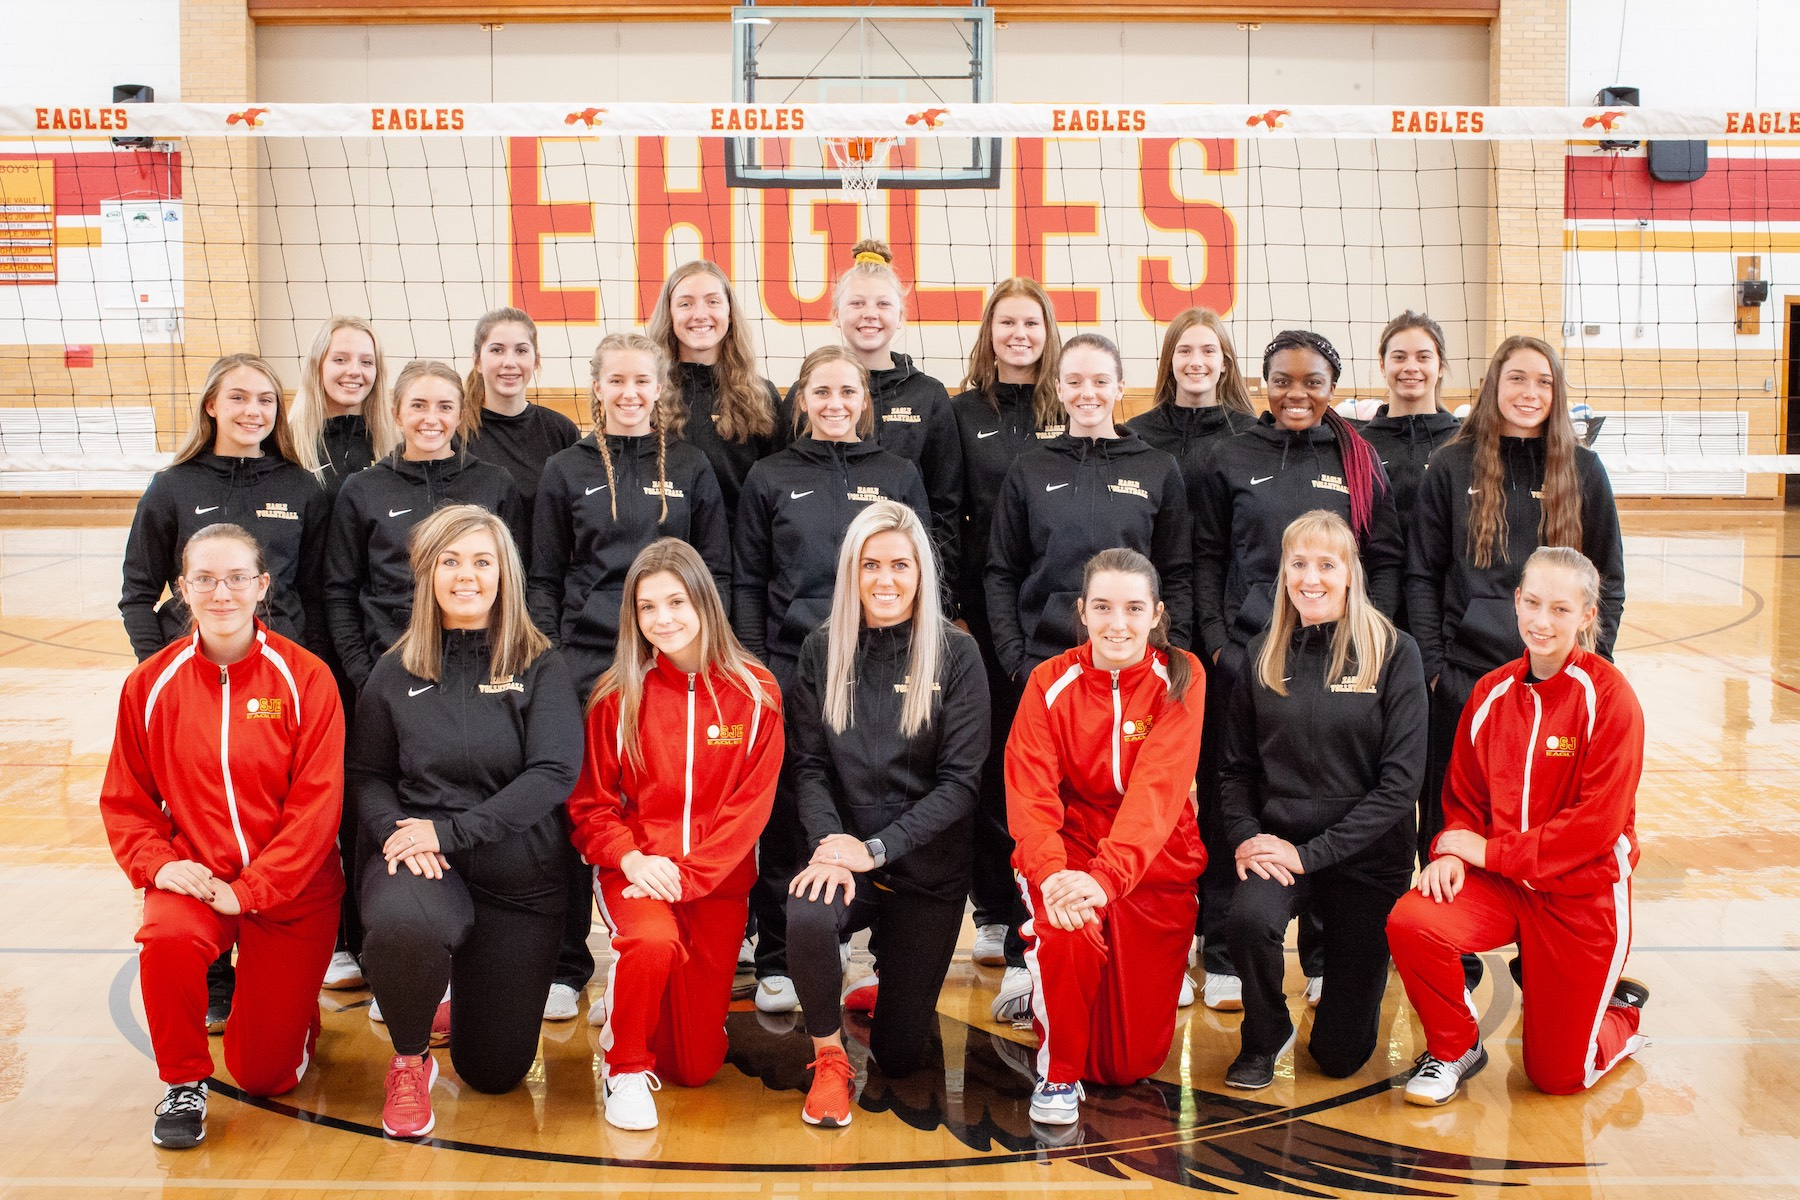 2019-2020 SJEL Eagle Volleyball Team